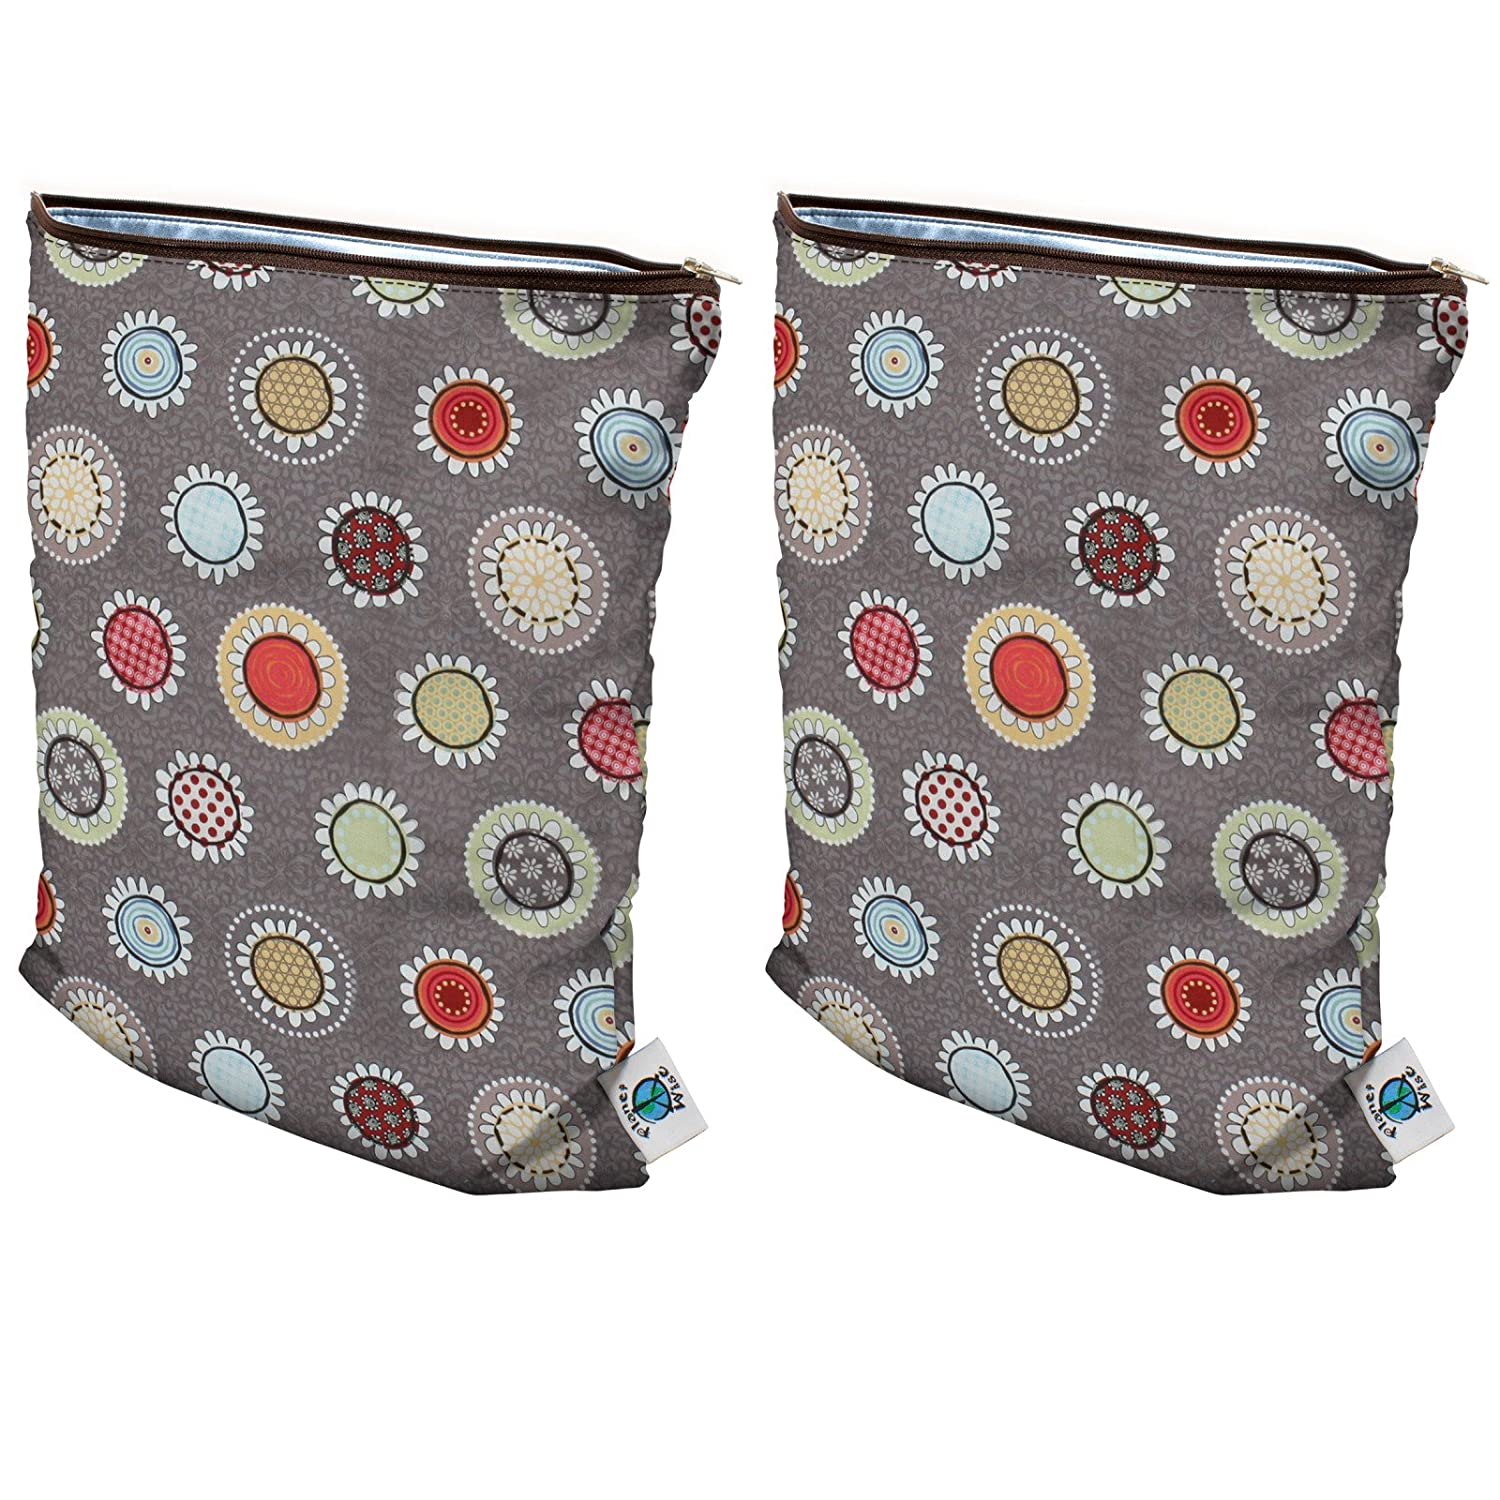 Amazon.com : Planet Wise Medium Wet Bag, 2 Pack - Funky Flowers : Diaper Tote Bags : Baby